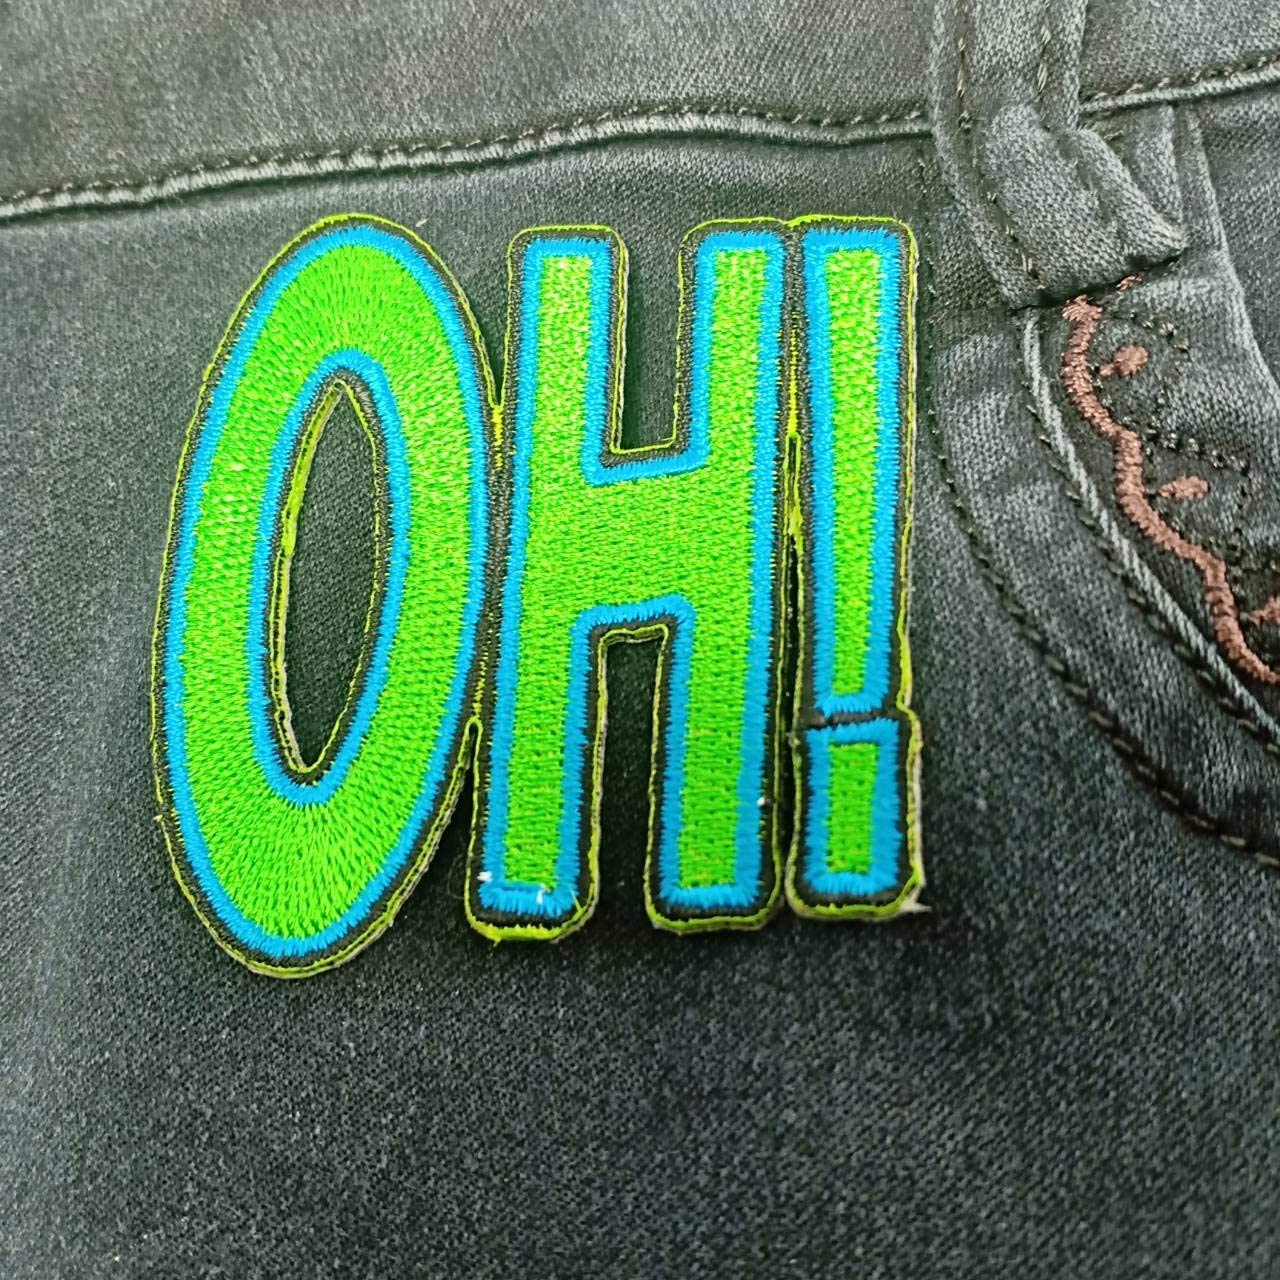 Patches Embroidered Iron Green On Sew Patch for Teen Men Women shirt biker jacket Iron applique Cheetah iron-on patch Hippie Retro Love Applique Biker Punk Shirt For jeans Heavens Tvcz OH hats bags